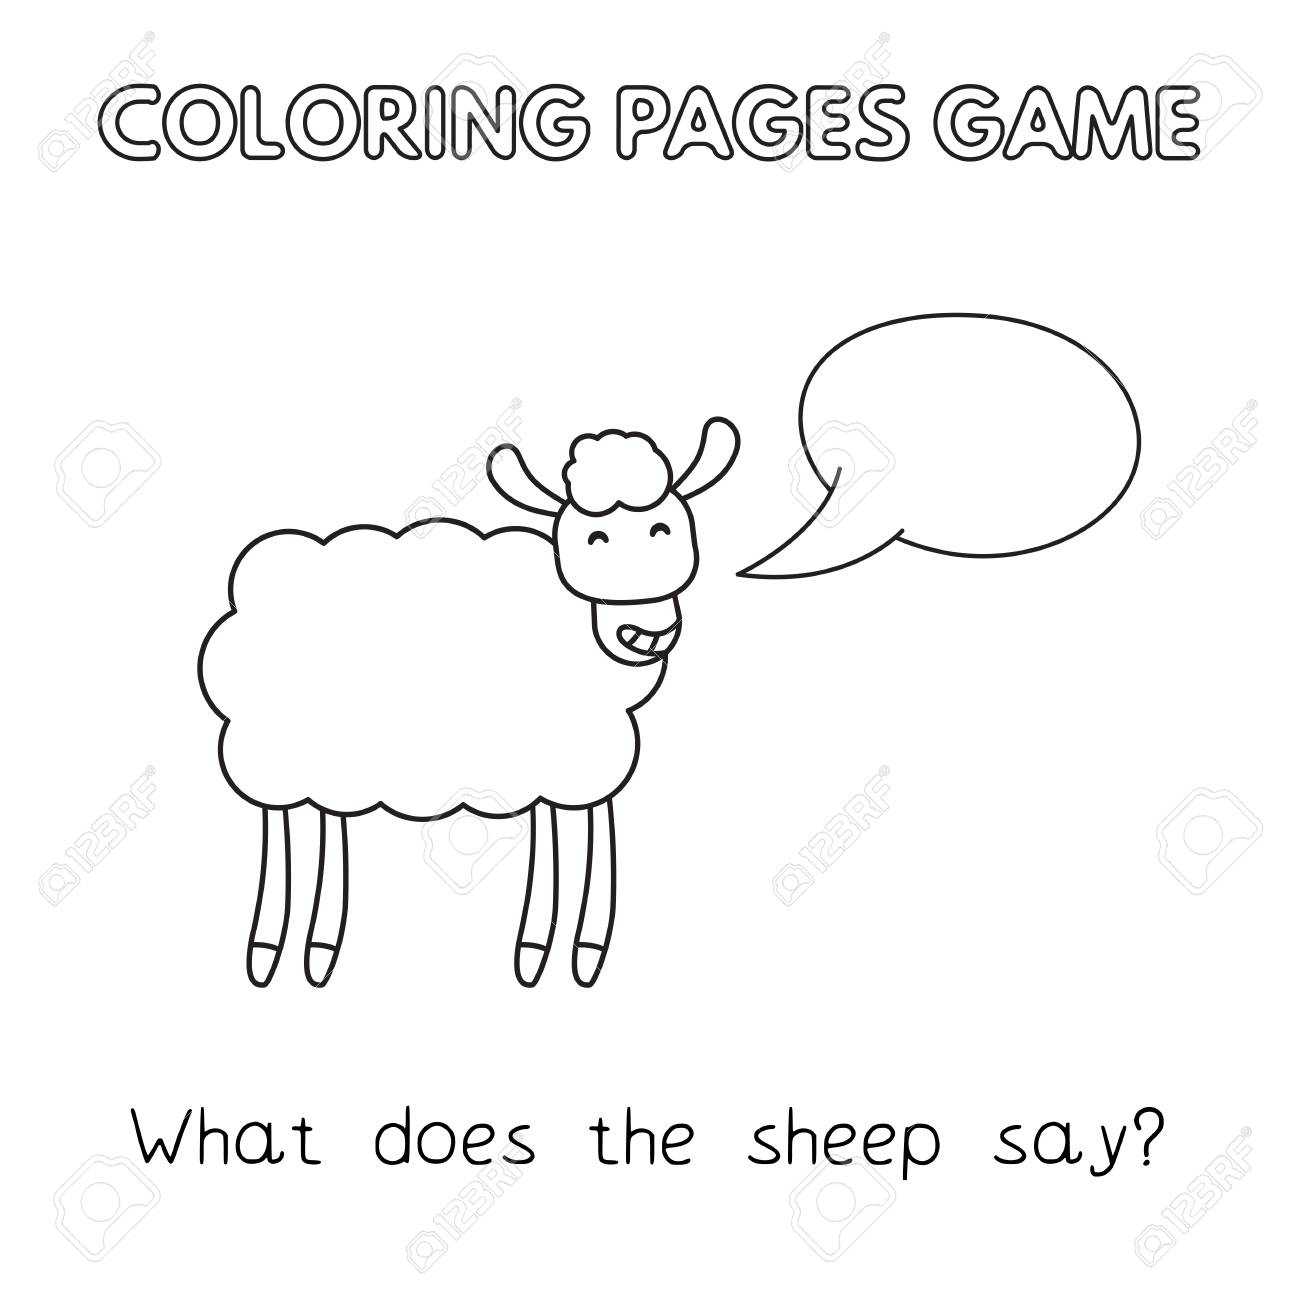 Funny Sheep Kids Learning Game Vector Coloring Book Pages For Children Stock